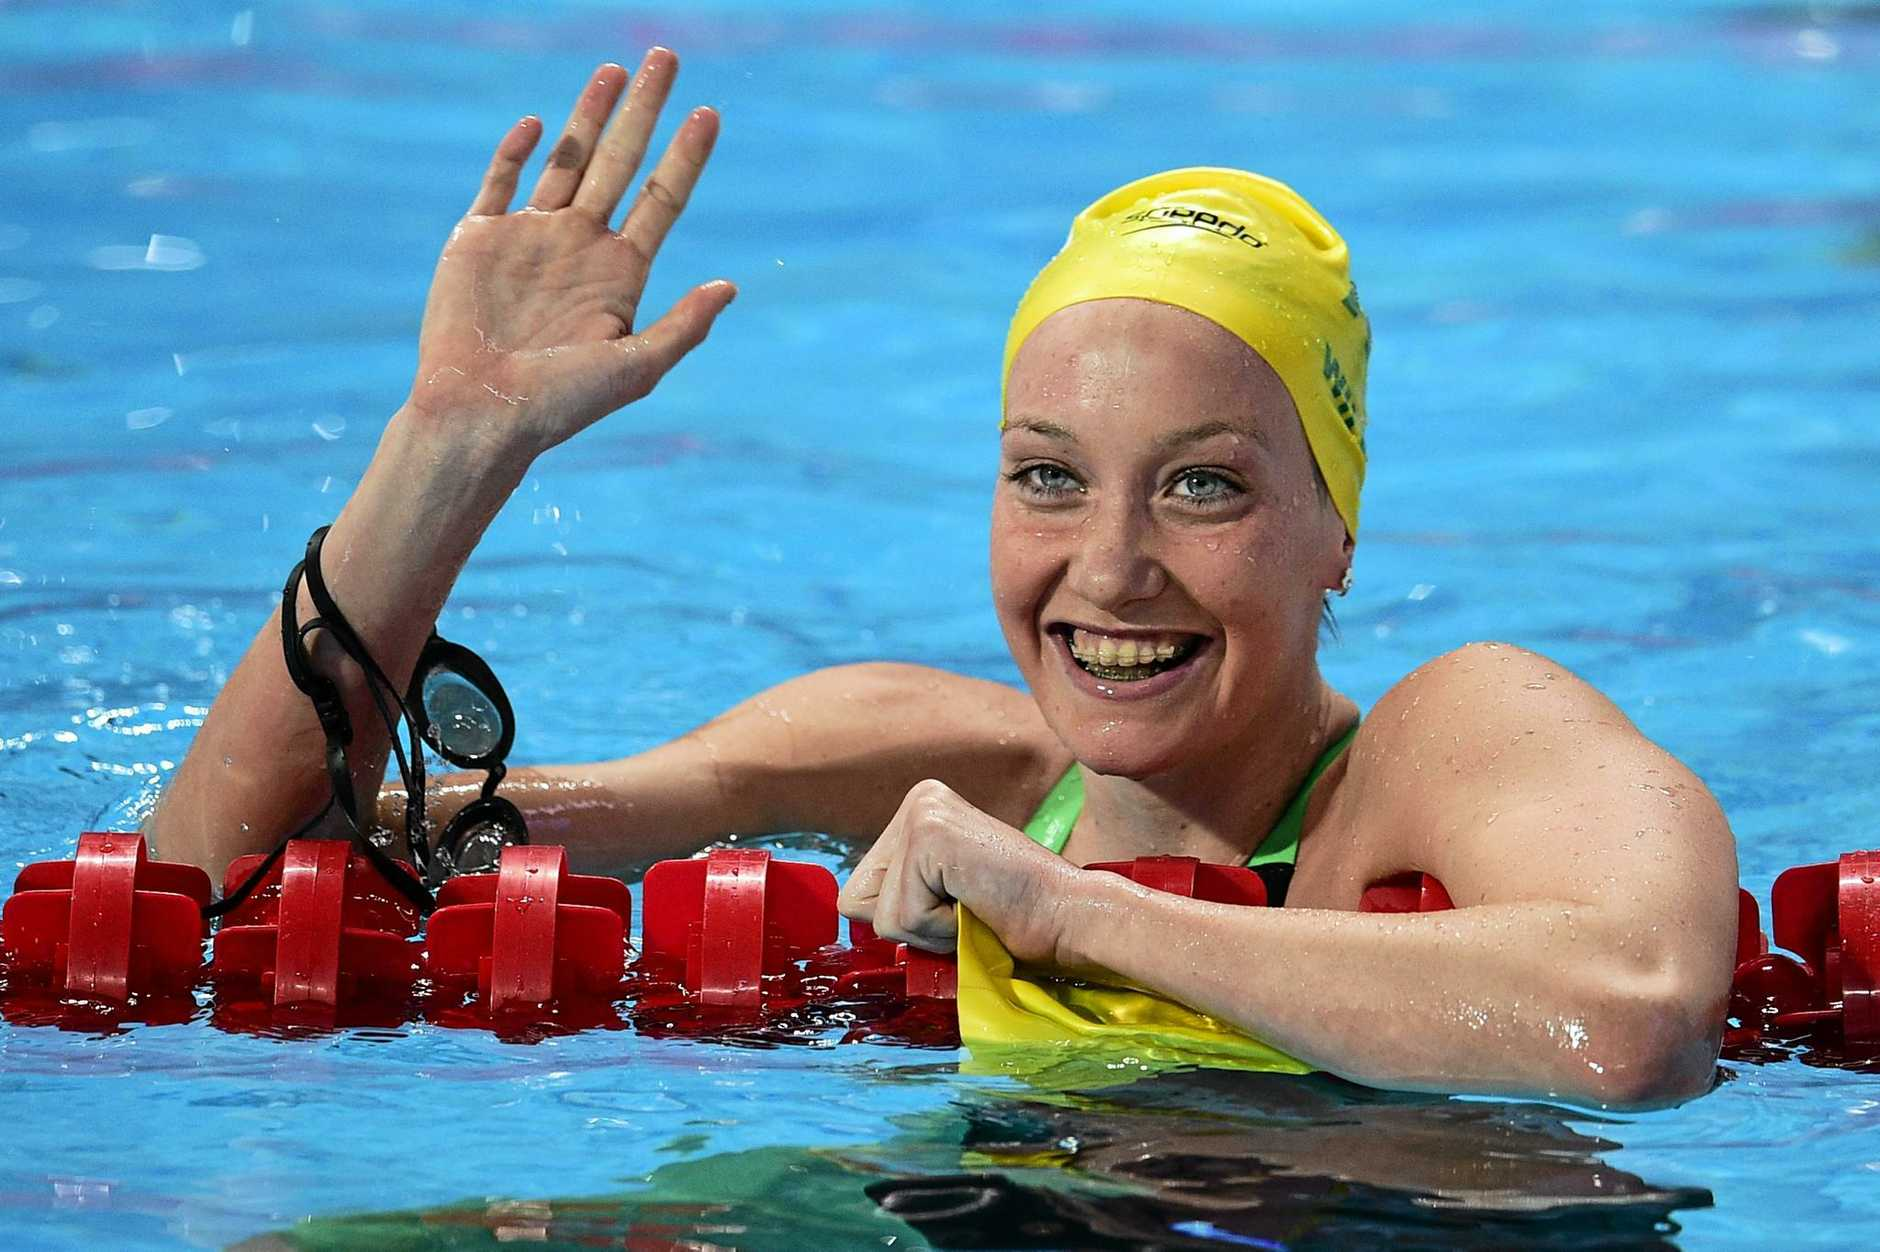 Australia's Madison Wilson, celebrates after winning the silver in the final of the women's 100m backstroke swimming event at the 2015 FINA World Championships in Kazan on August 4, 2015.    AFP PHOTO / MARTIN BUREAU